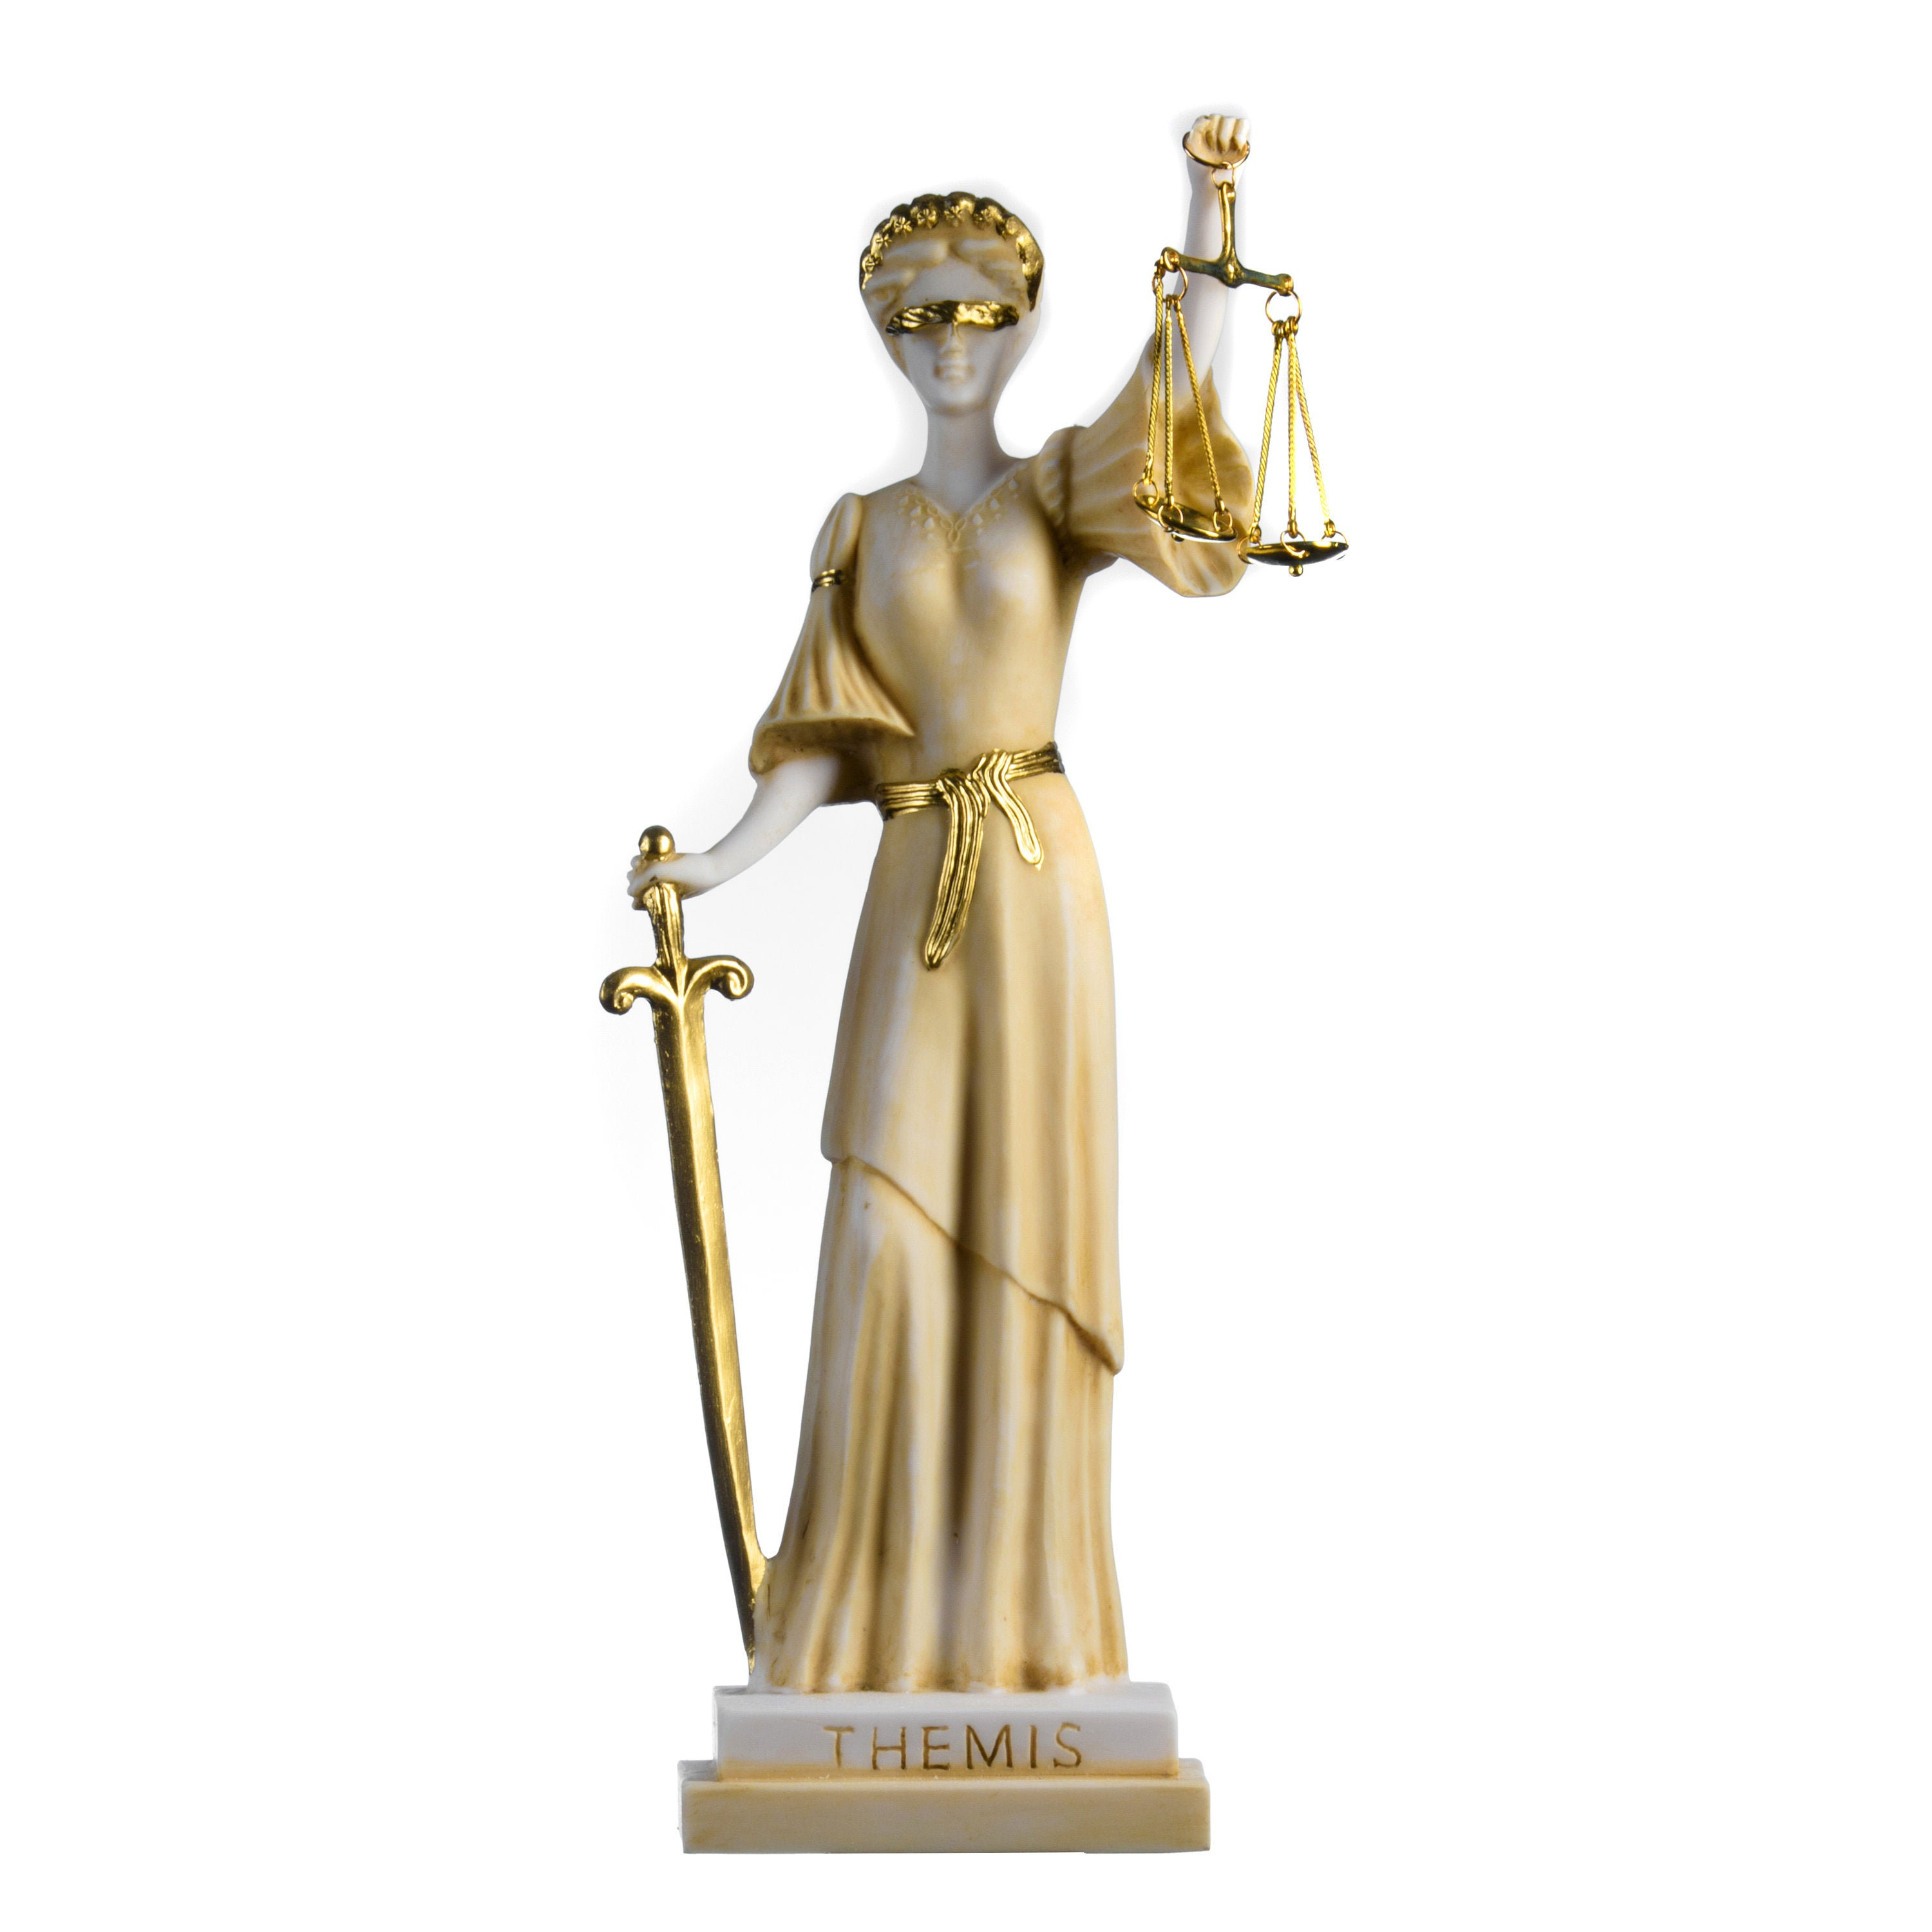 Greek Goddess Themis Statue Gold Colour Blind Lady Justice Sculpture Lawyer Gift 15.35''